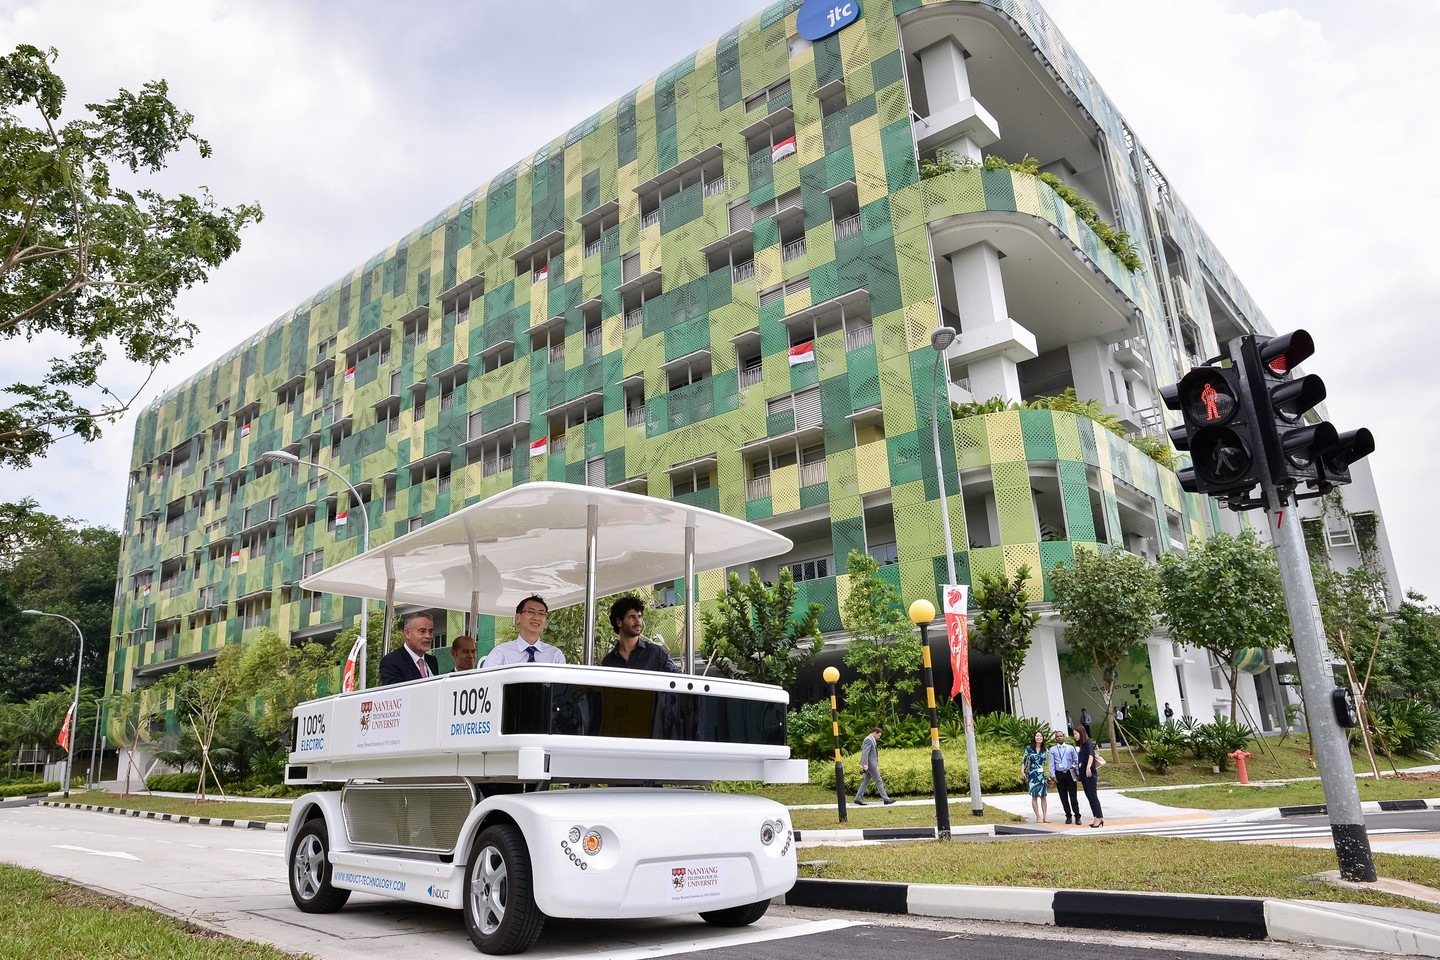 Singapore recently unveiled NAVIA, the first driverless electric shuttle that will transfer passengers using intelligence systems and software.